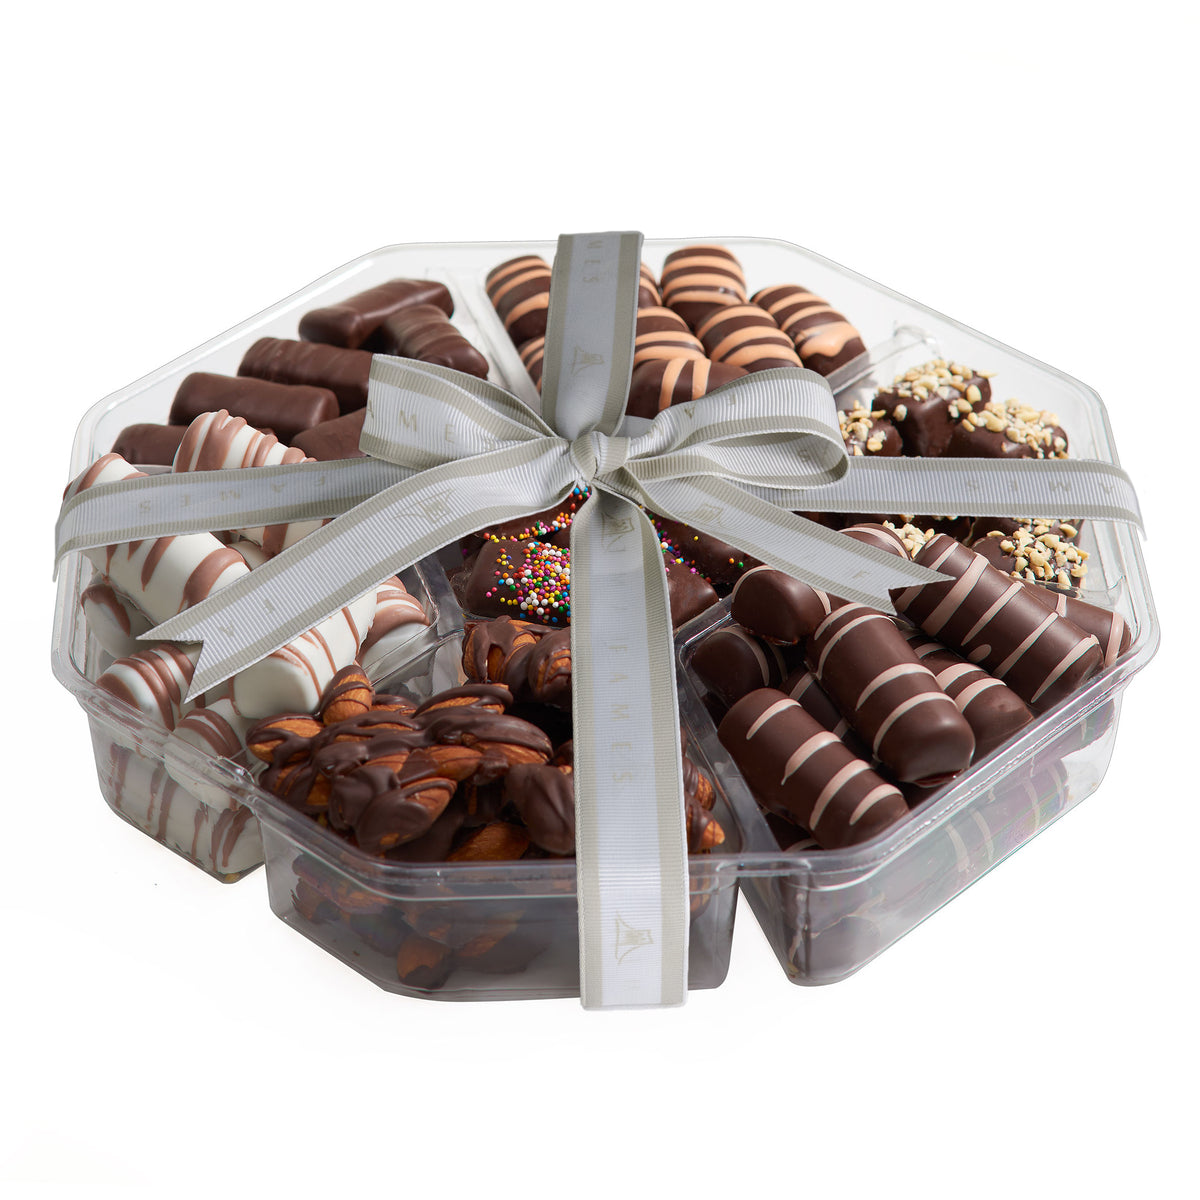 Chocolate Gift Baskets For Families - 3 Pack, Dairy Free, Kosher.